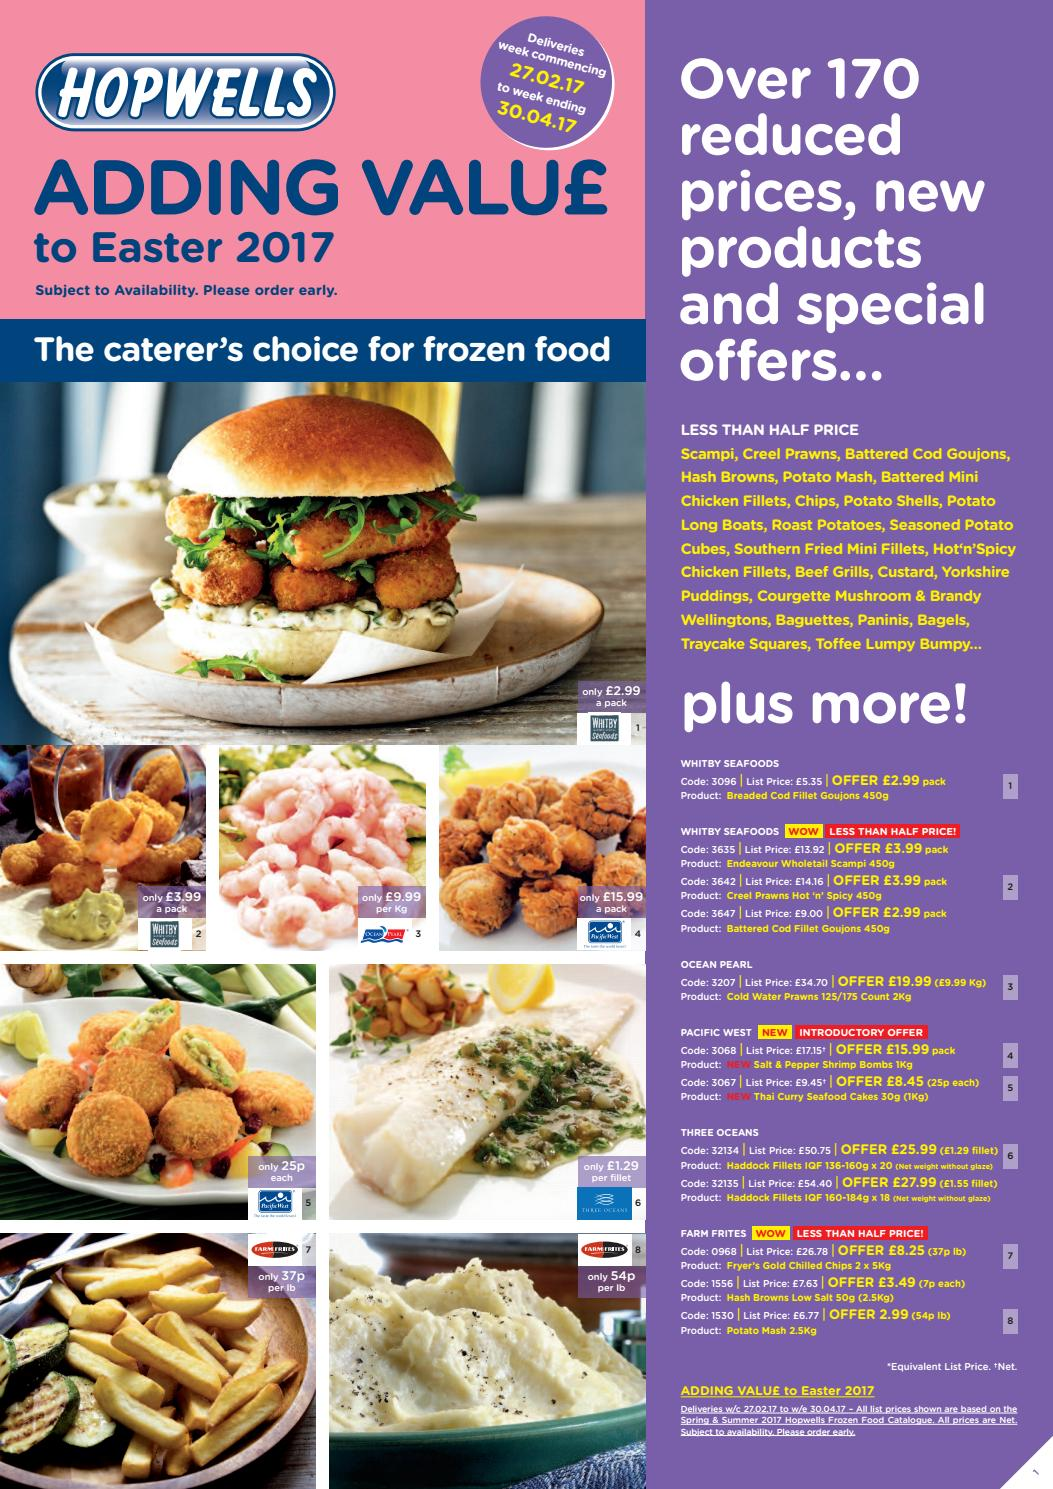 Adding value to easter 2017 by Hopwells Ltd - issuu